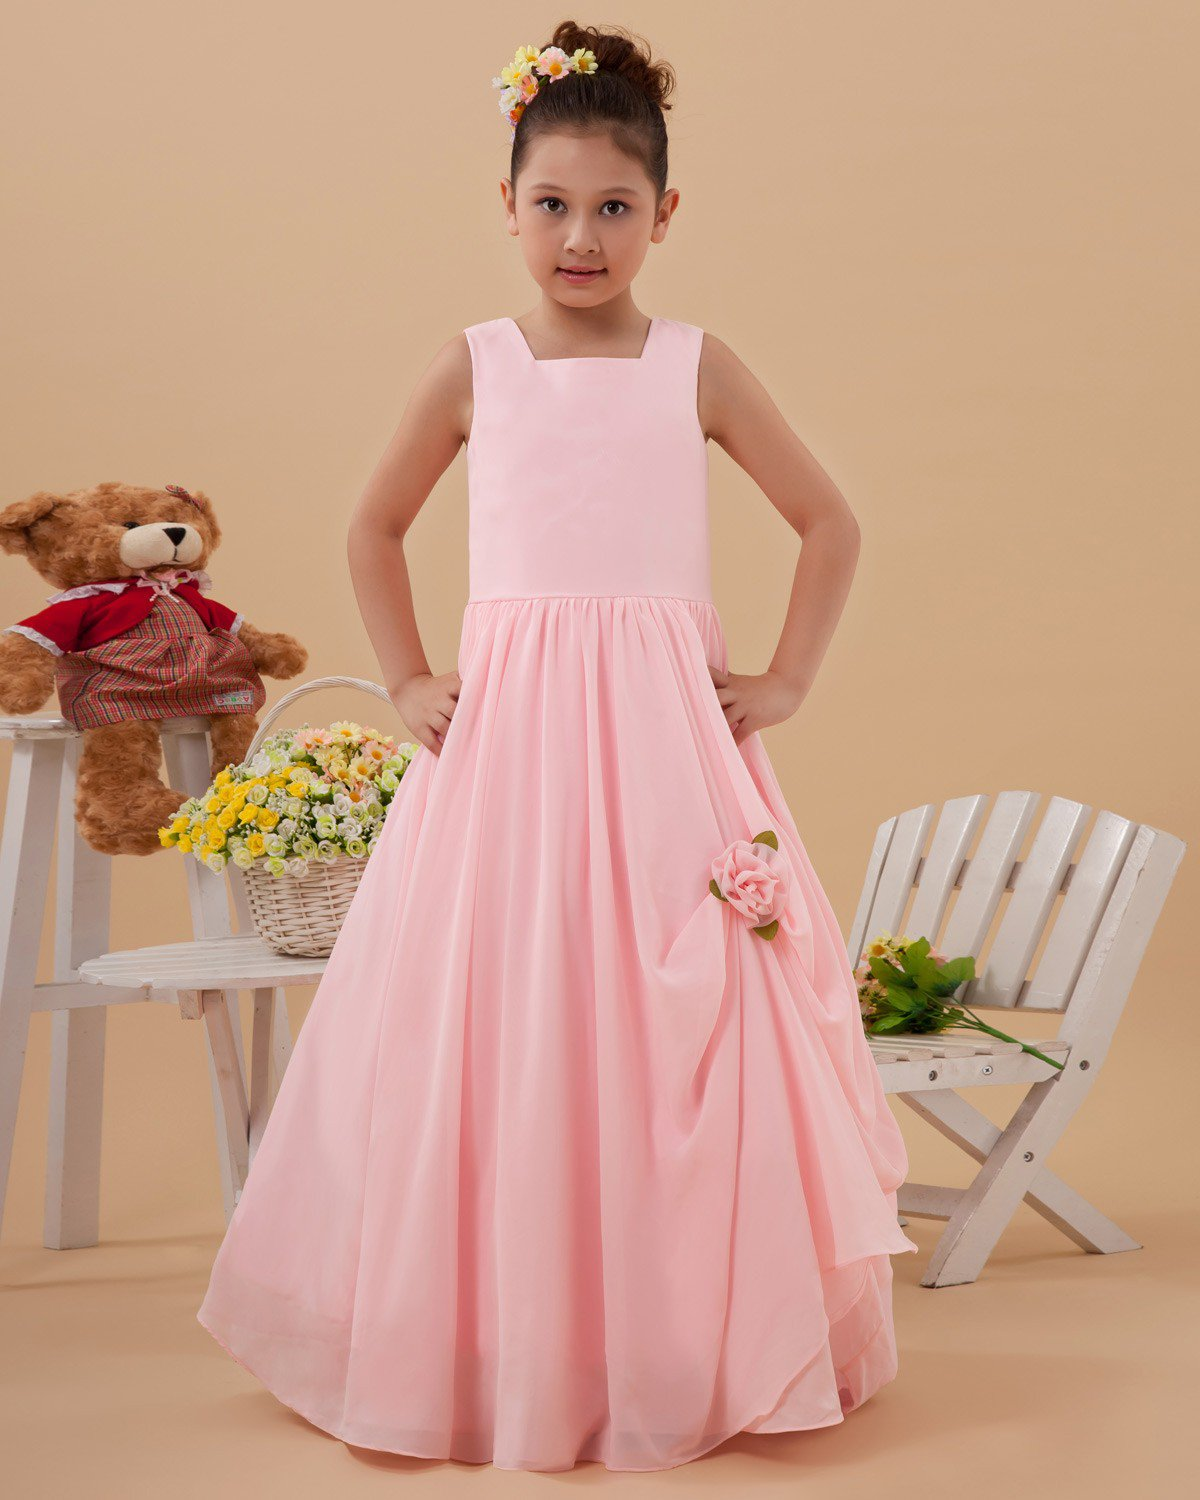 Taffeta Flower Ruffle Square Neck Floor Length Flower Girl Dresses 2214120071